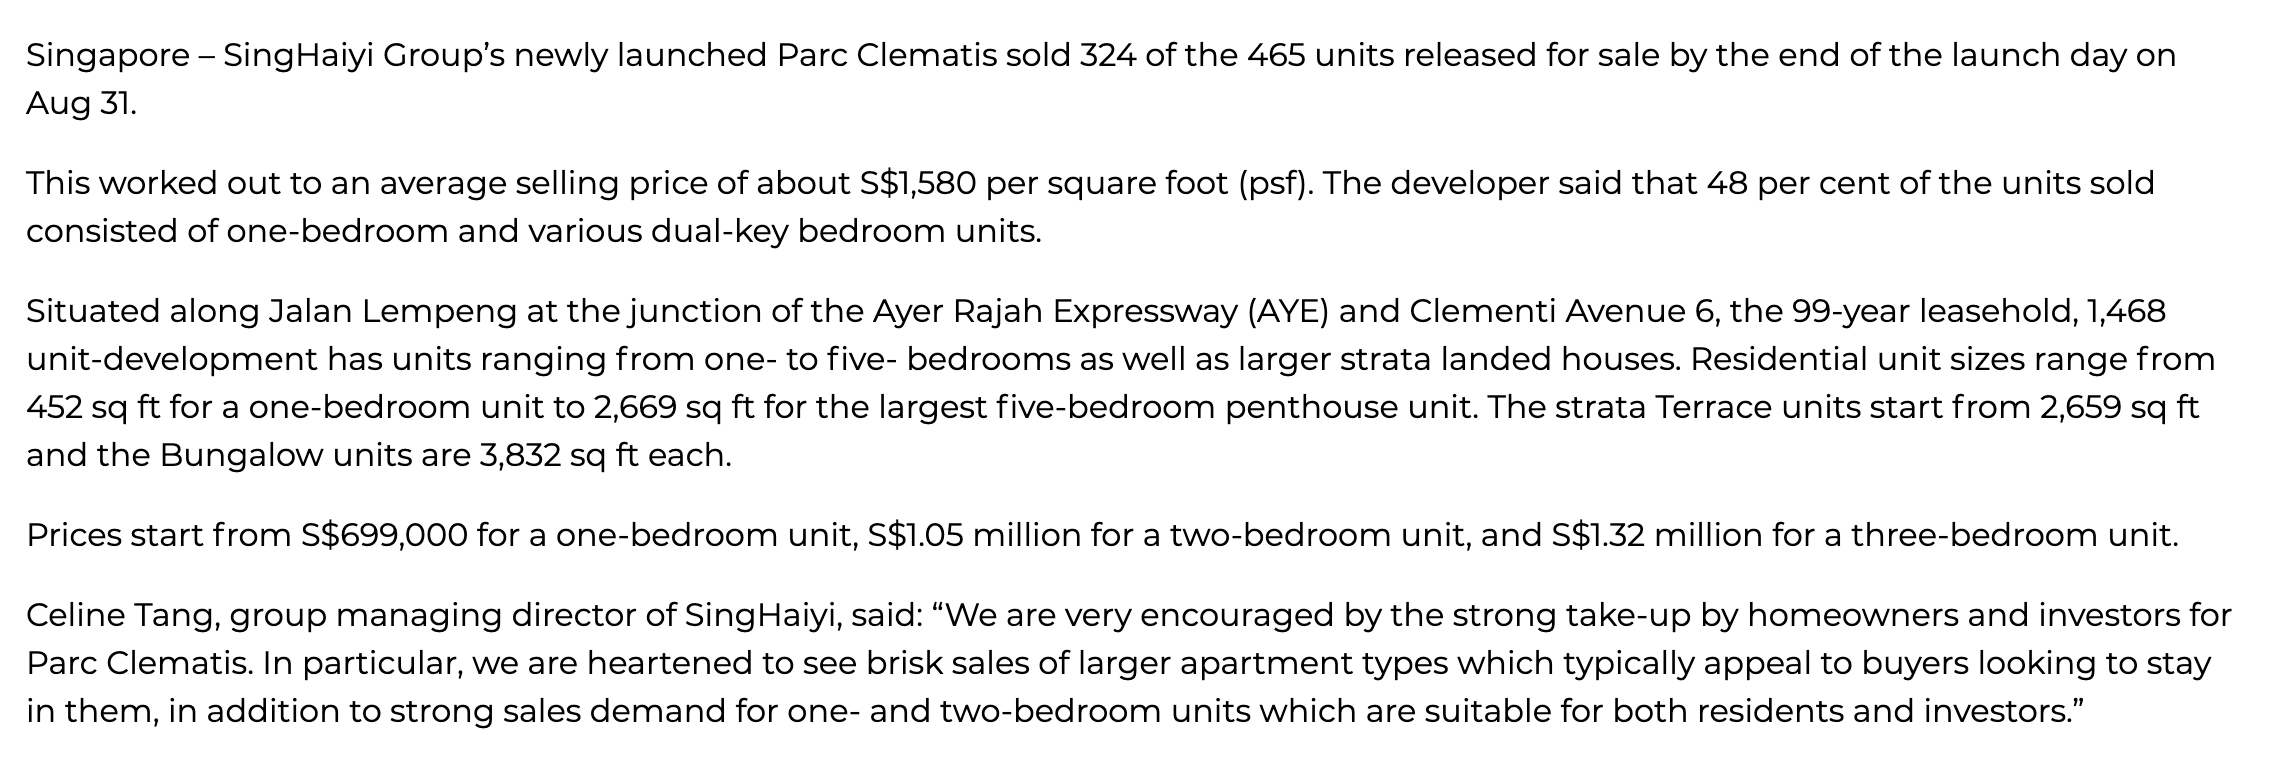 Singhaiyi sells 324 units of Parc Clematis on launch day